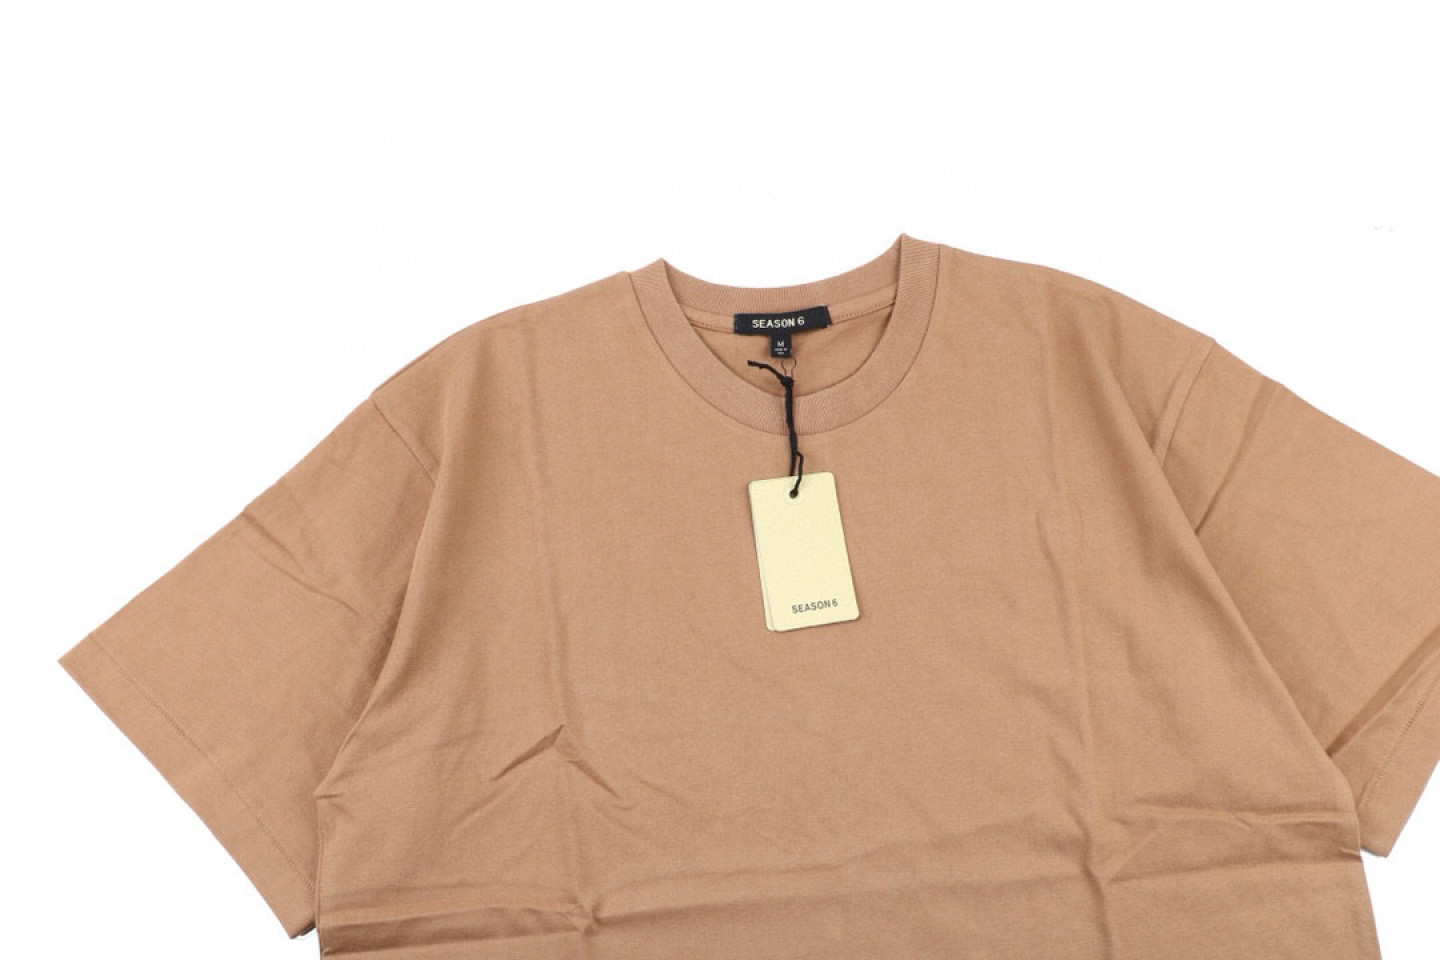 Shirt KANYE WEST yeezy reason 6 high street shirt beige 2 kanye_west_yeezy_reason_6_high_street_shirt_beige__2